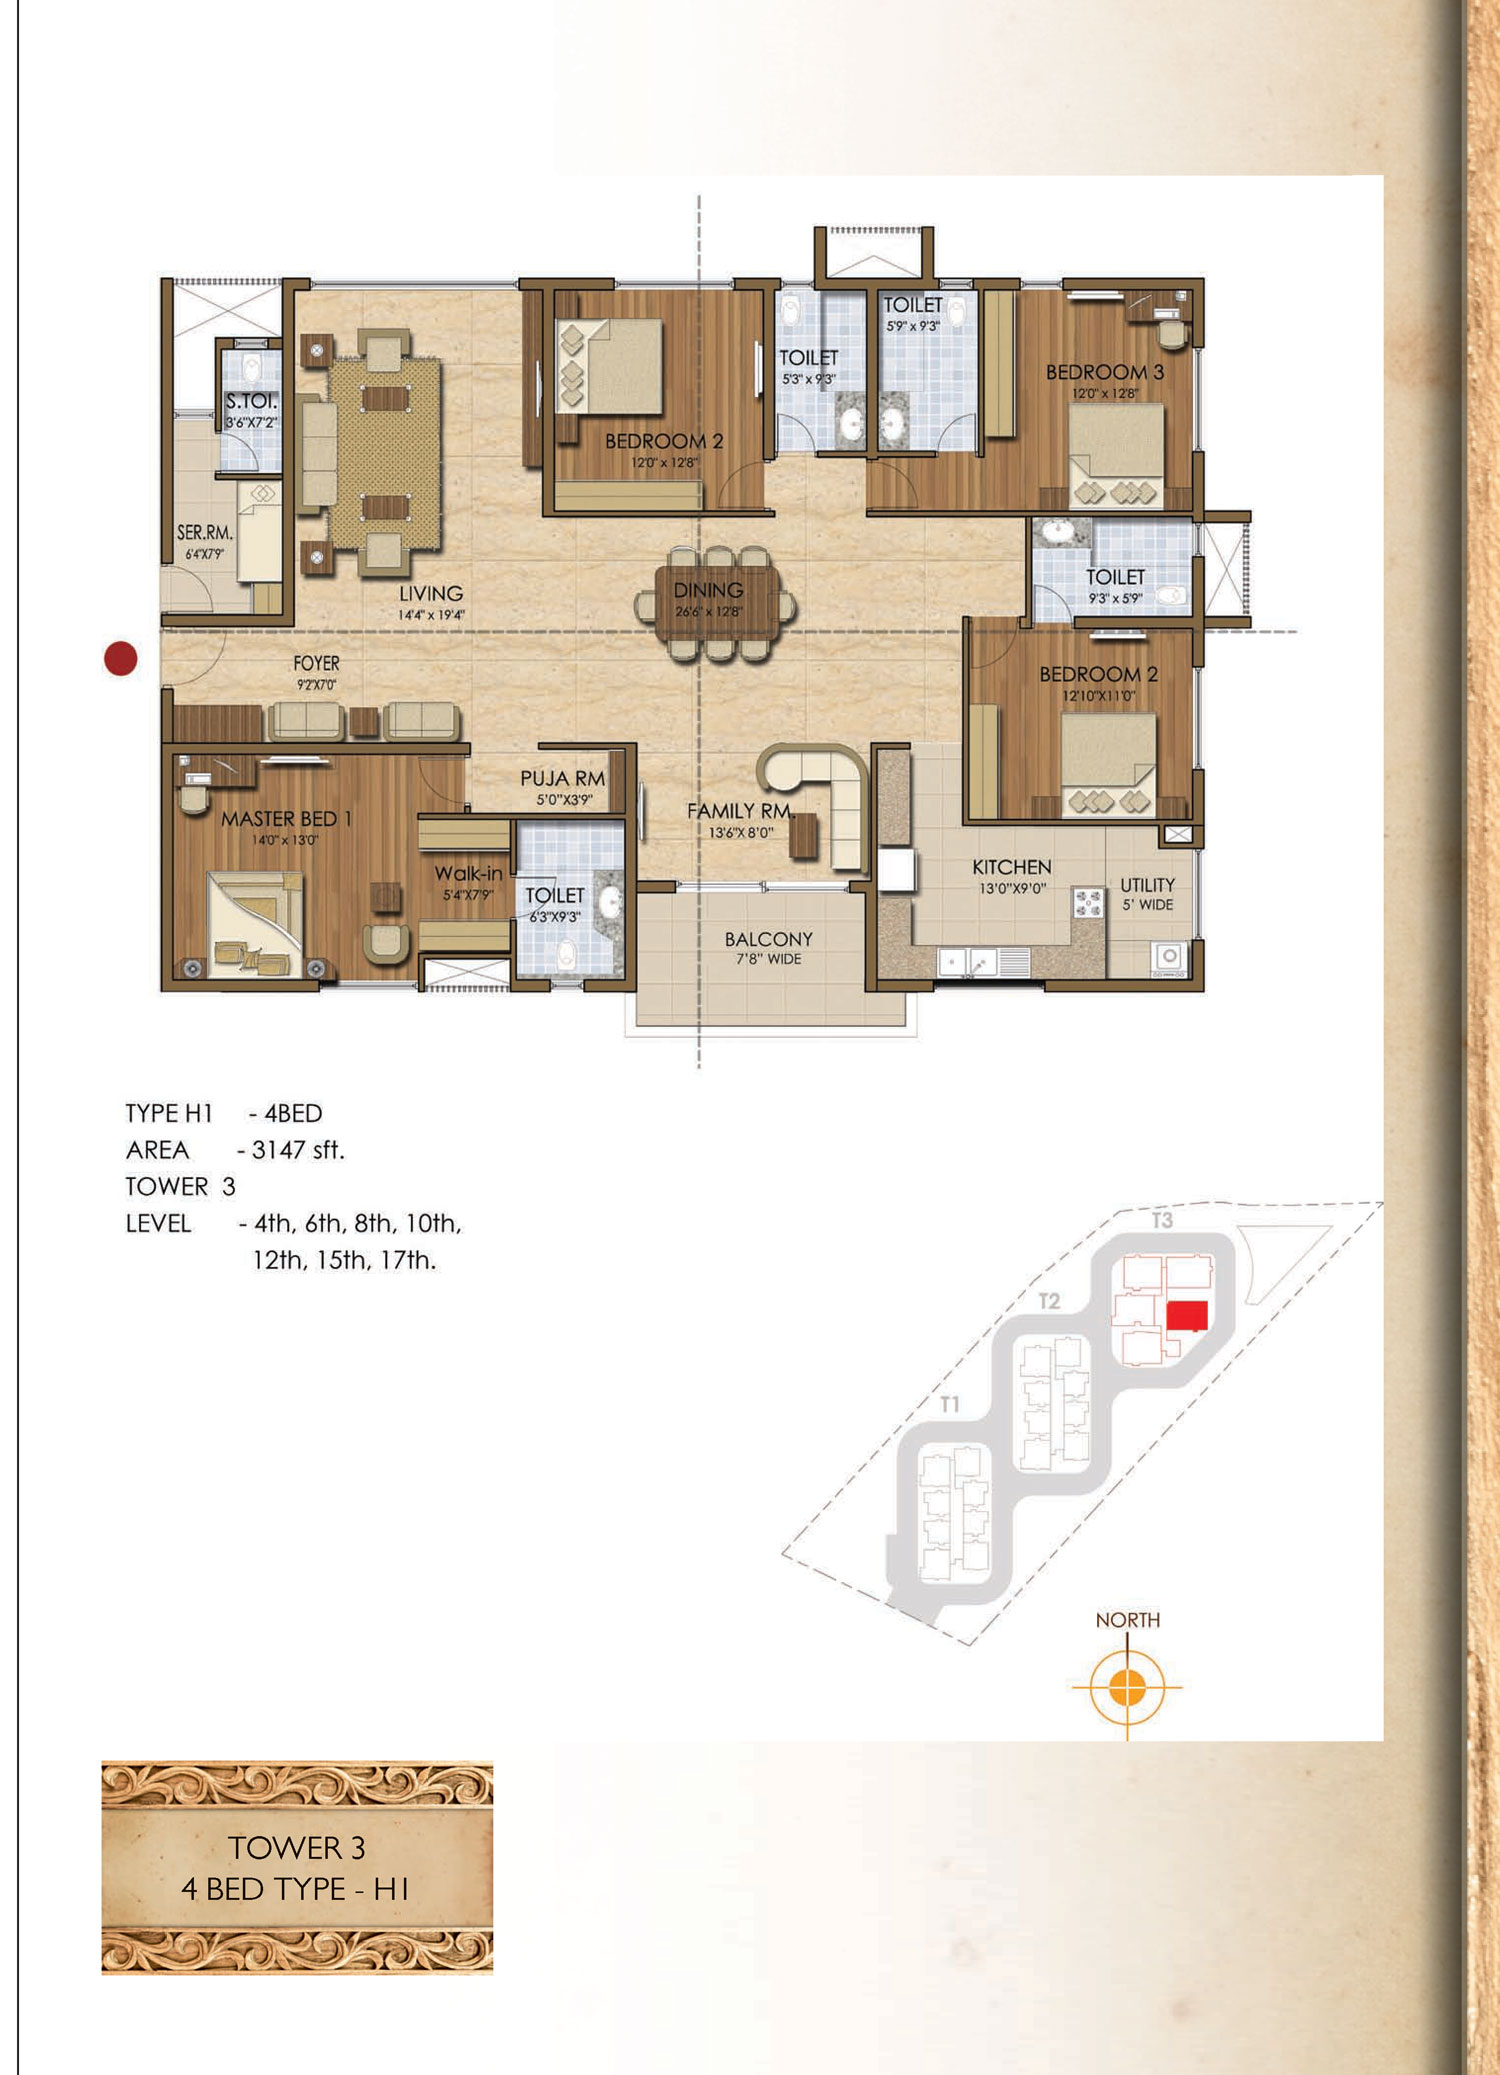 Type H1 - 3147 Sq Ft